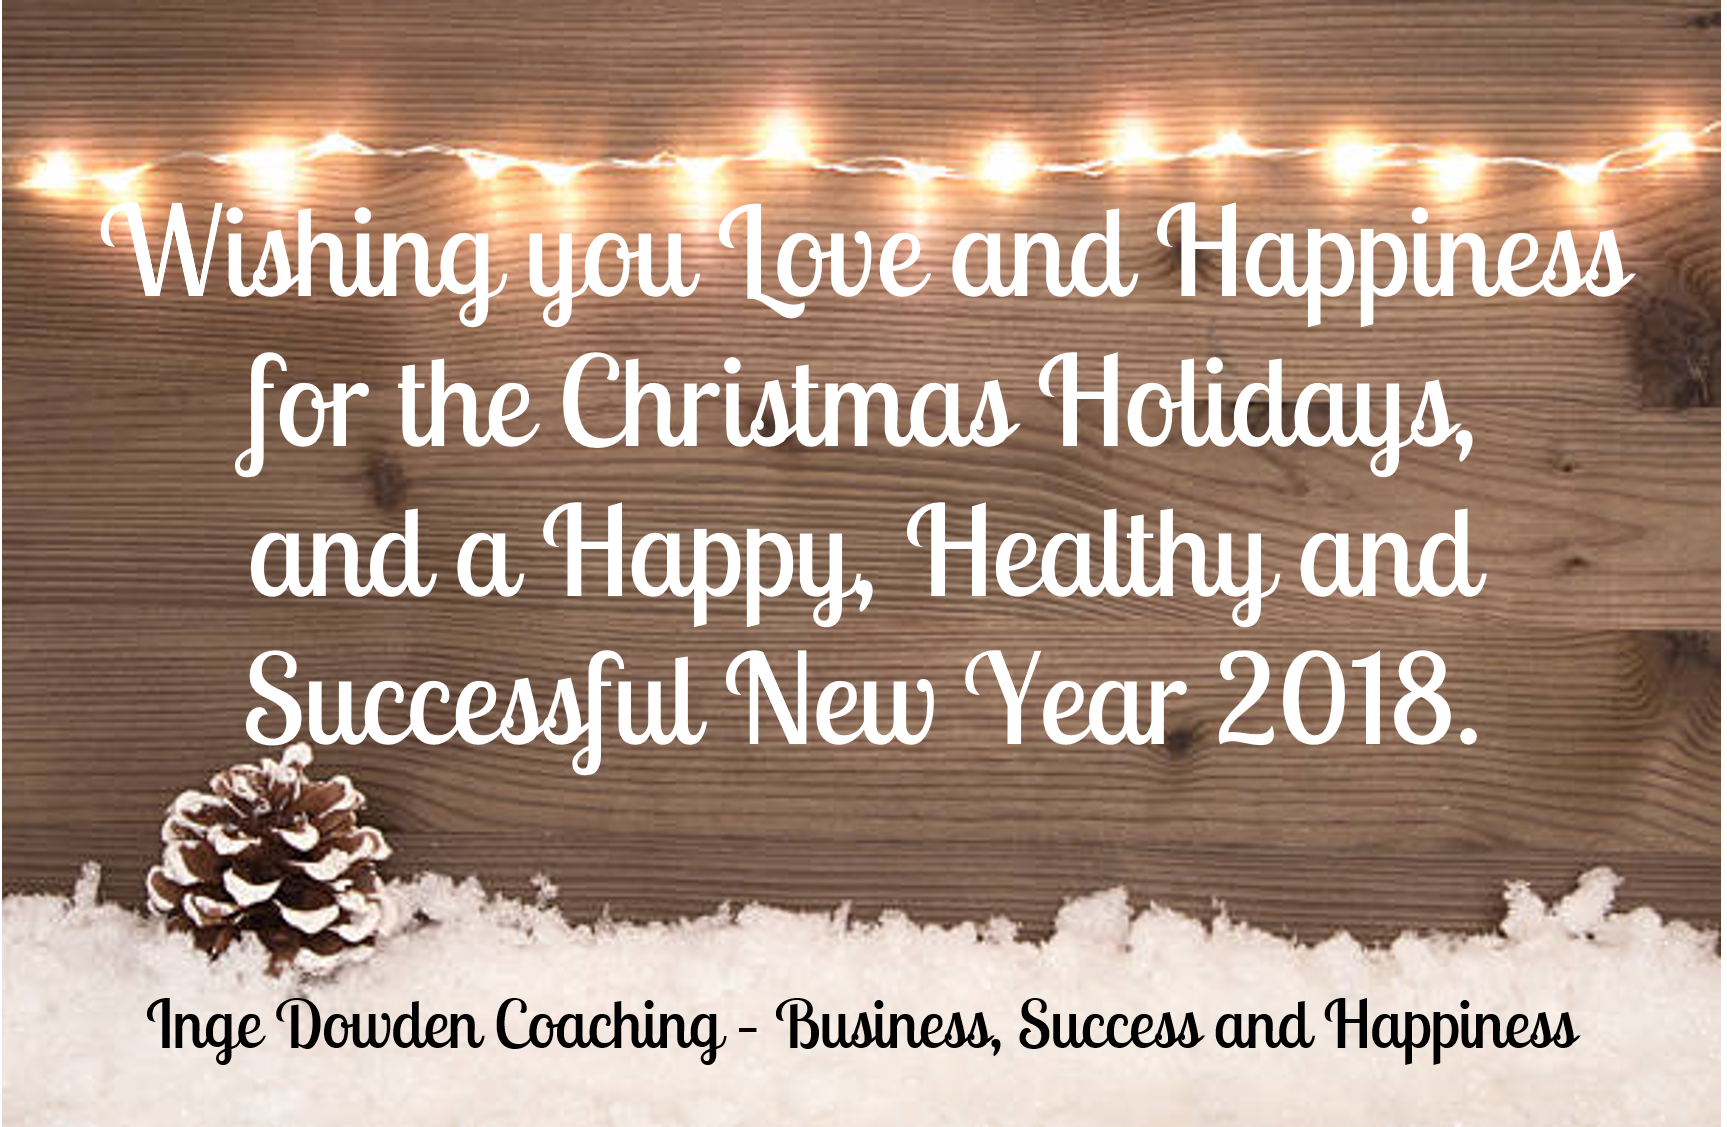 Merry Christmas from Inge Dowden